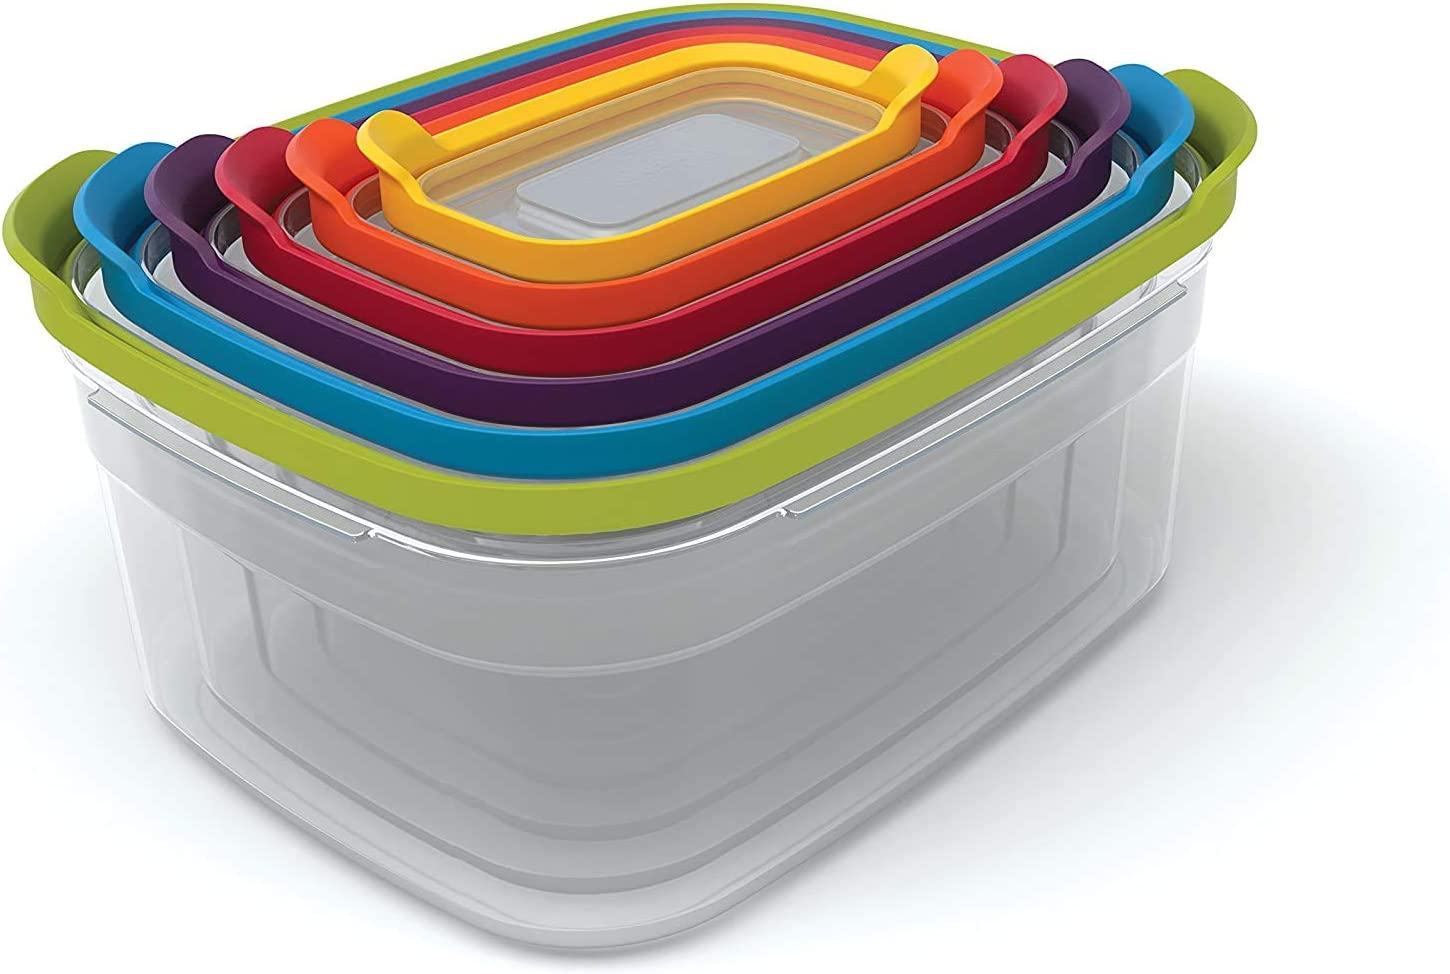 Plastic Food Storage Containers Set with Lids Airtight Microwave Safe, 12-Piece, Multi-color Nest Lock Plastic Food Storage Container Set with Lockable Airtight Leakproof Lids, Multi-Color